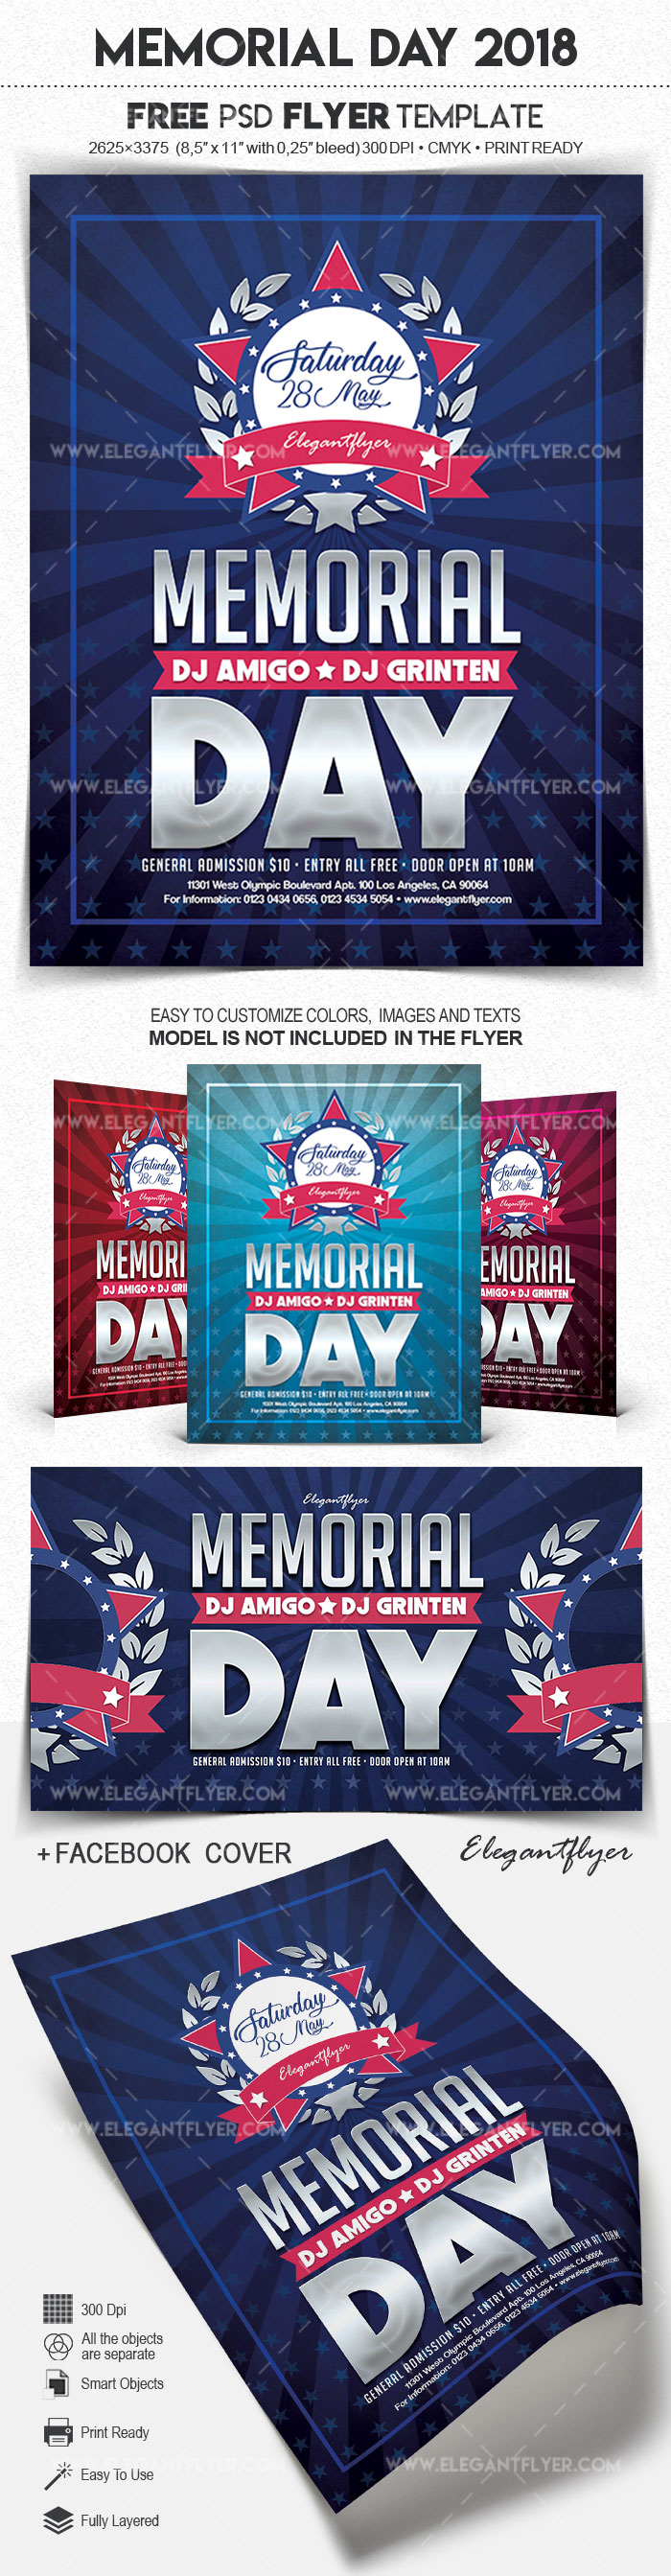 Memorial Day 2018 – Free Flyer PSD Template